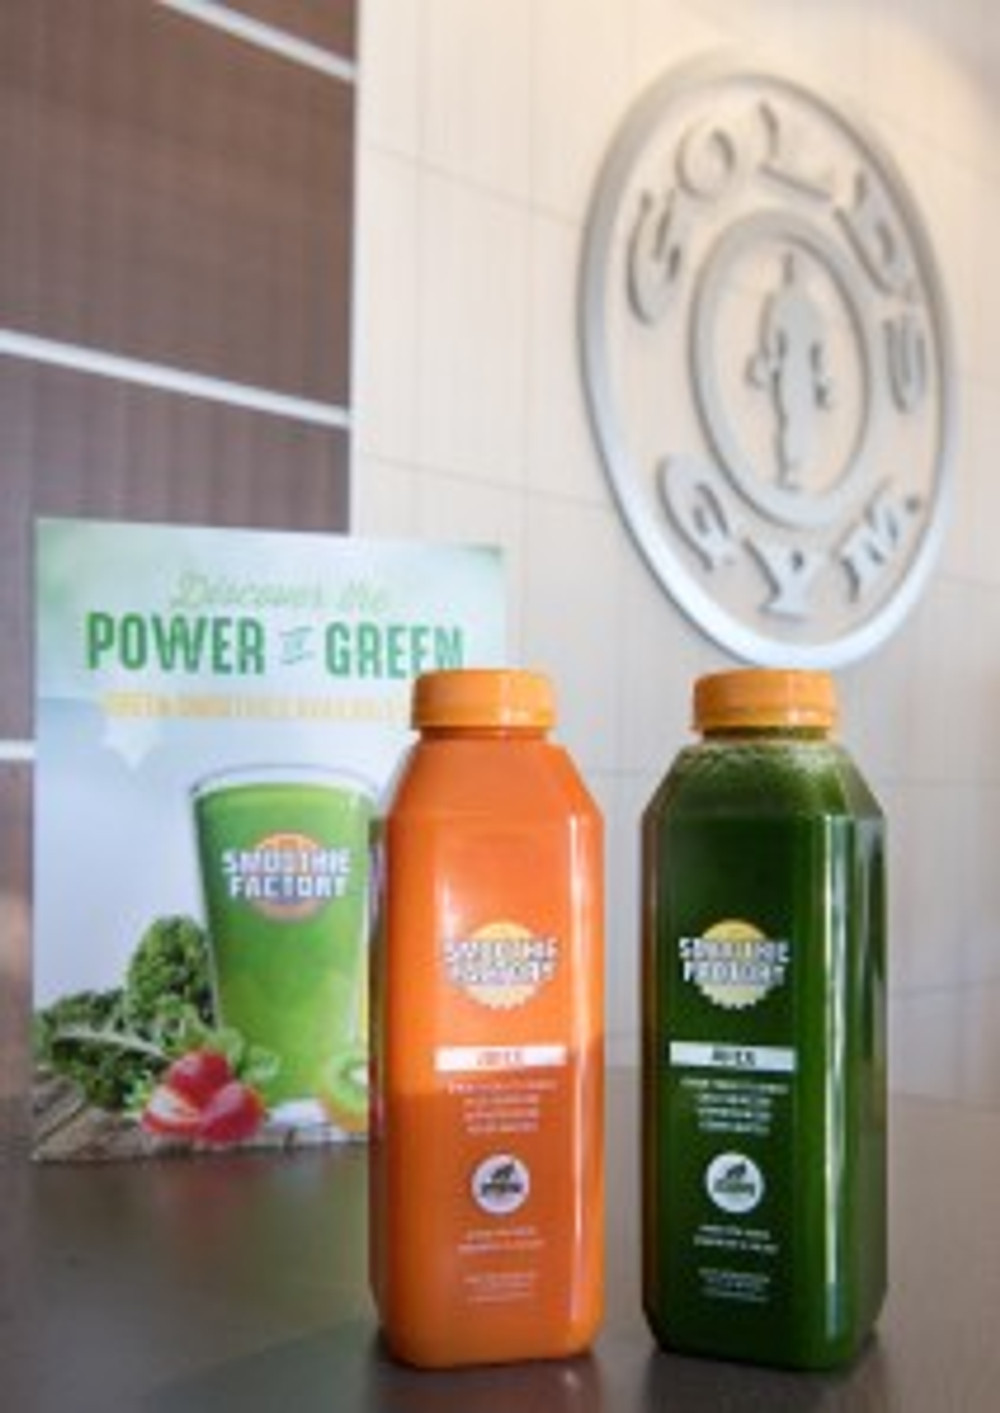 Gold's Gym members can finish their workouts at Smoothie Factory in new test locations.